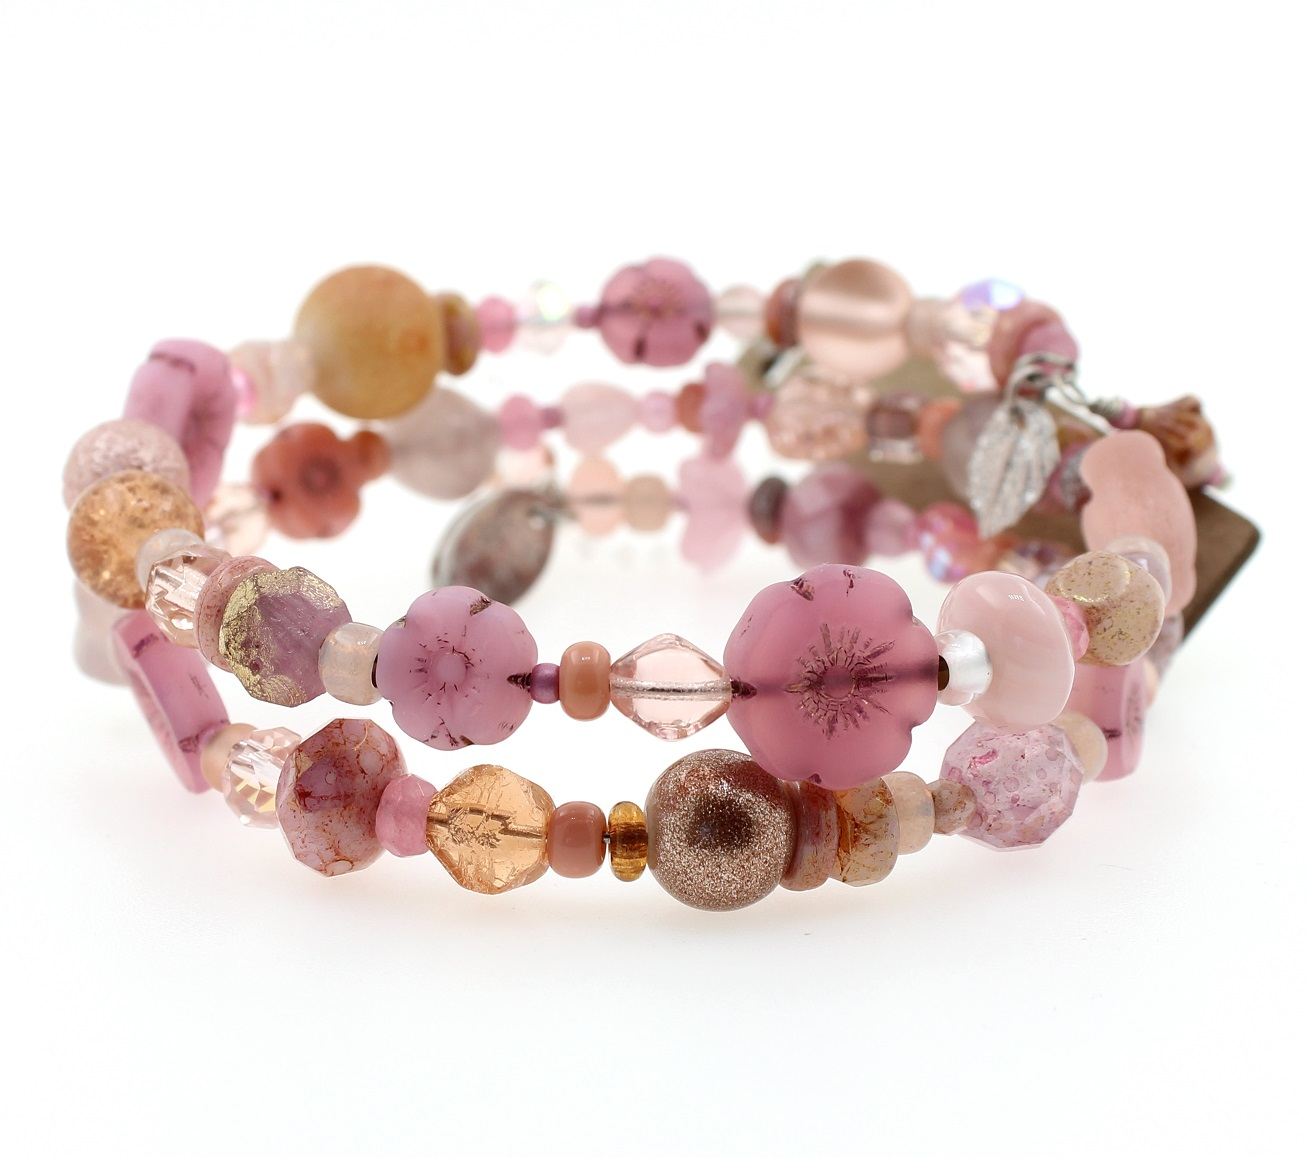 Shades of Pink Glass Bead Mixture Double Loop Wrap Bracelet